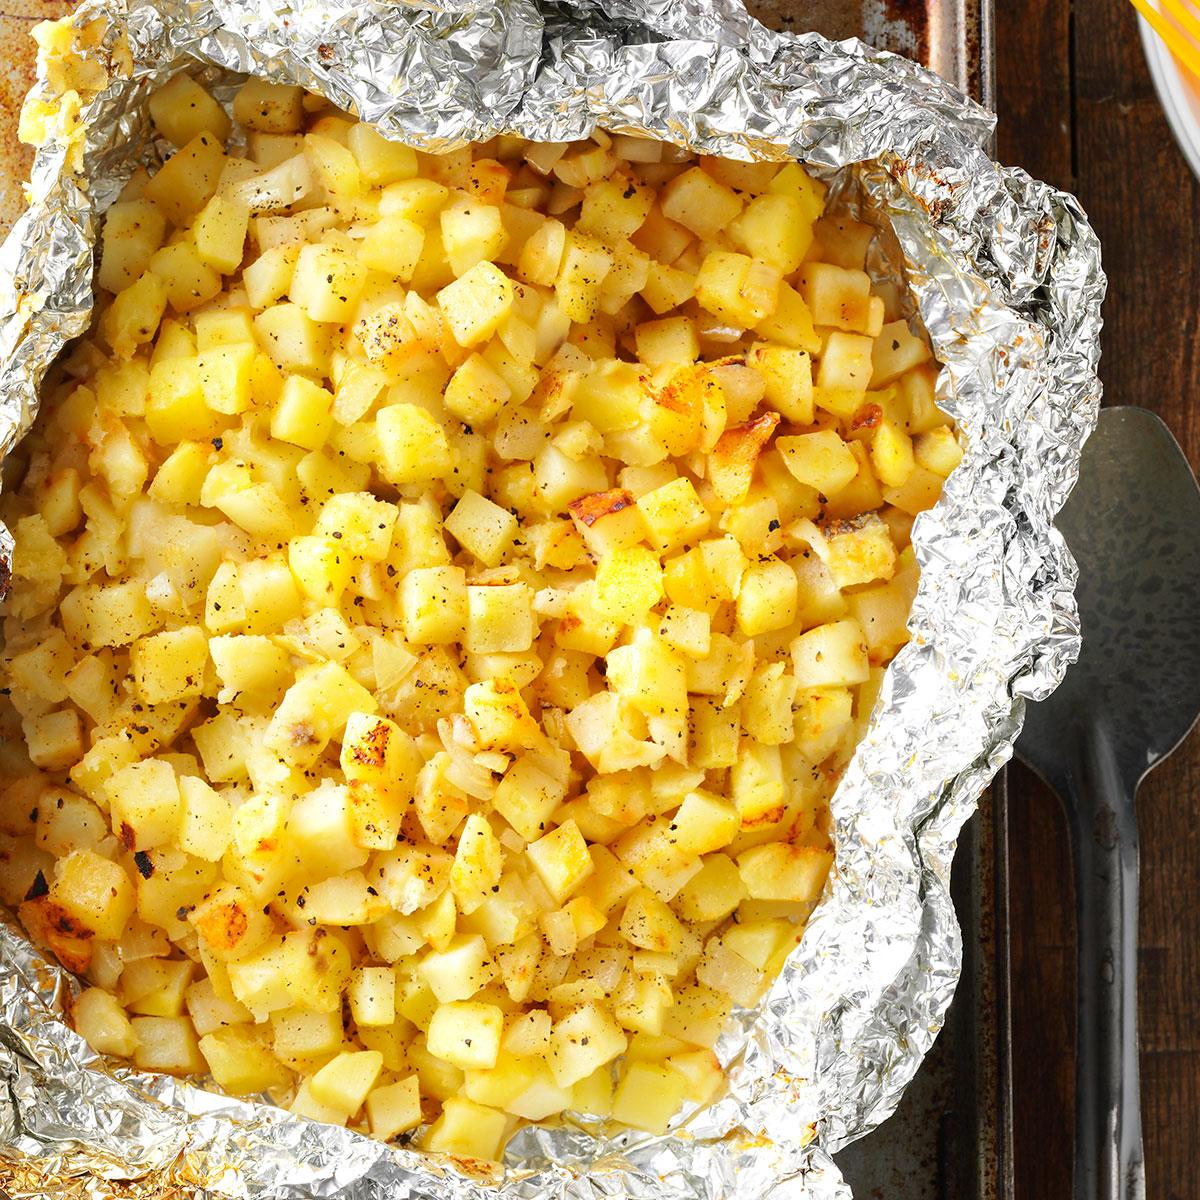 45 Easy Camping Recipes: Grilled Hash Browns Recipe